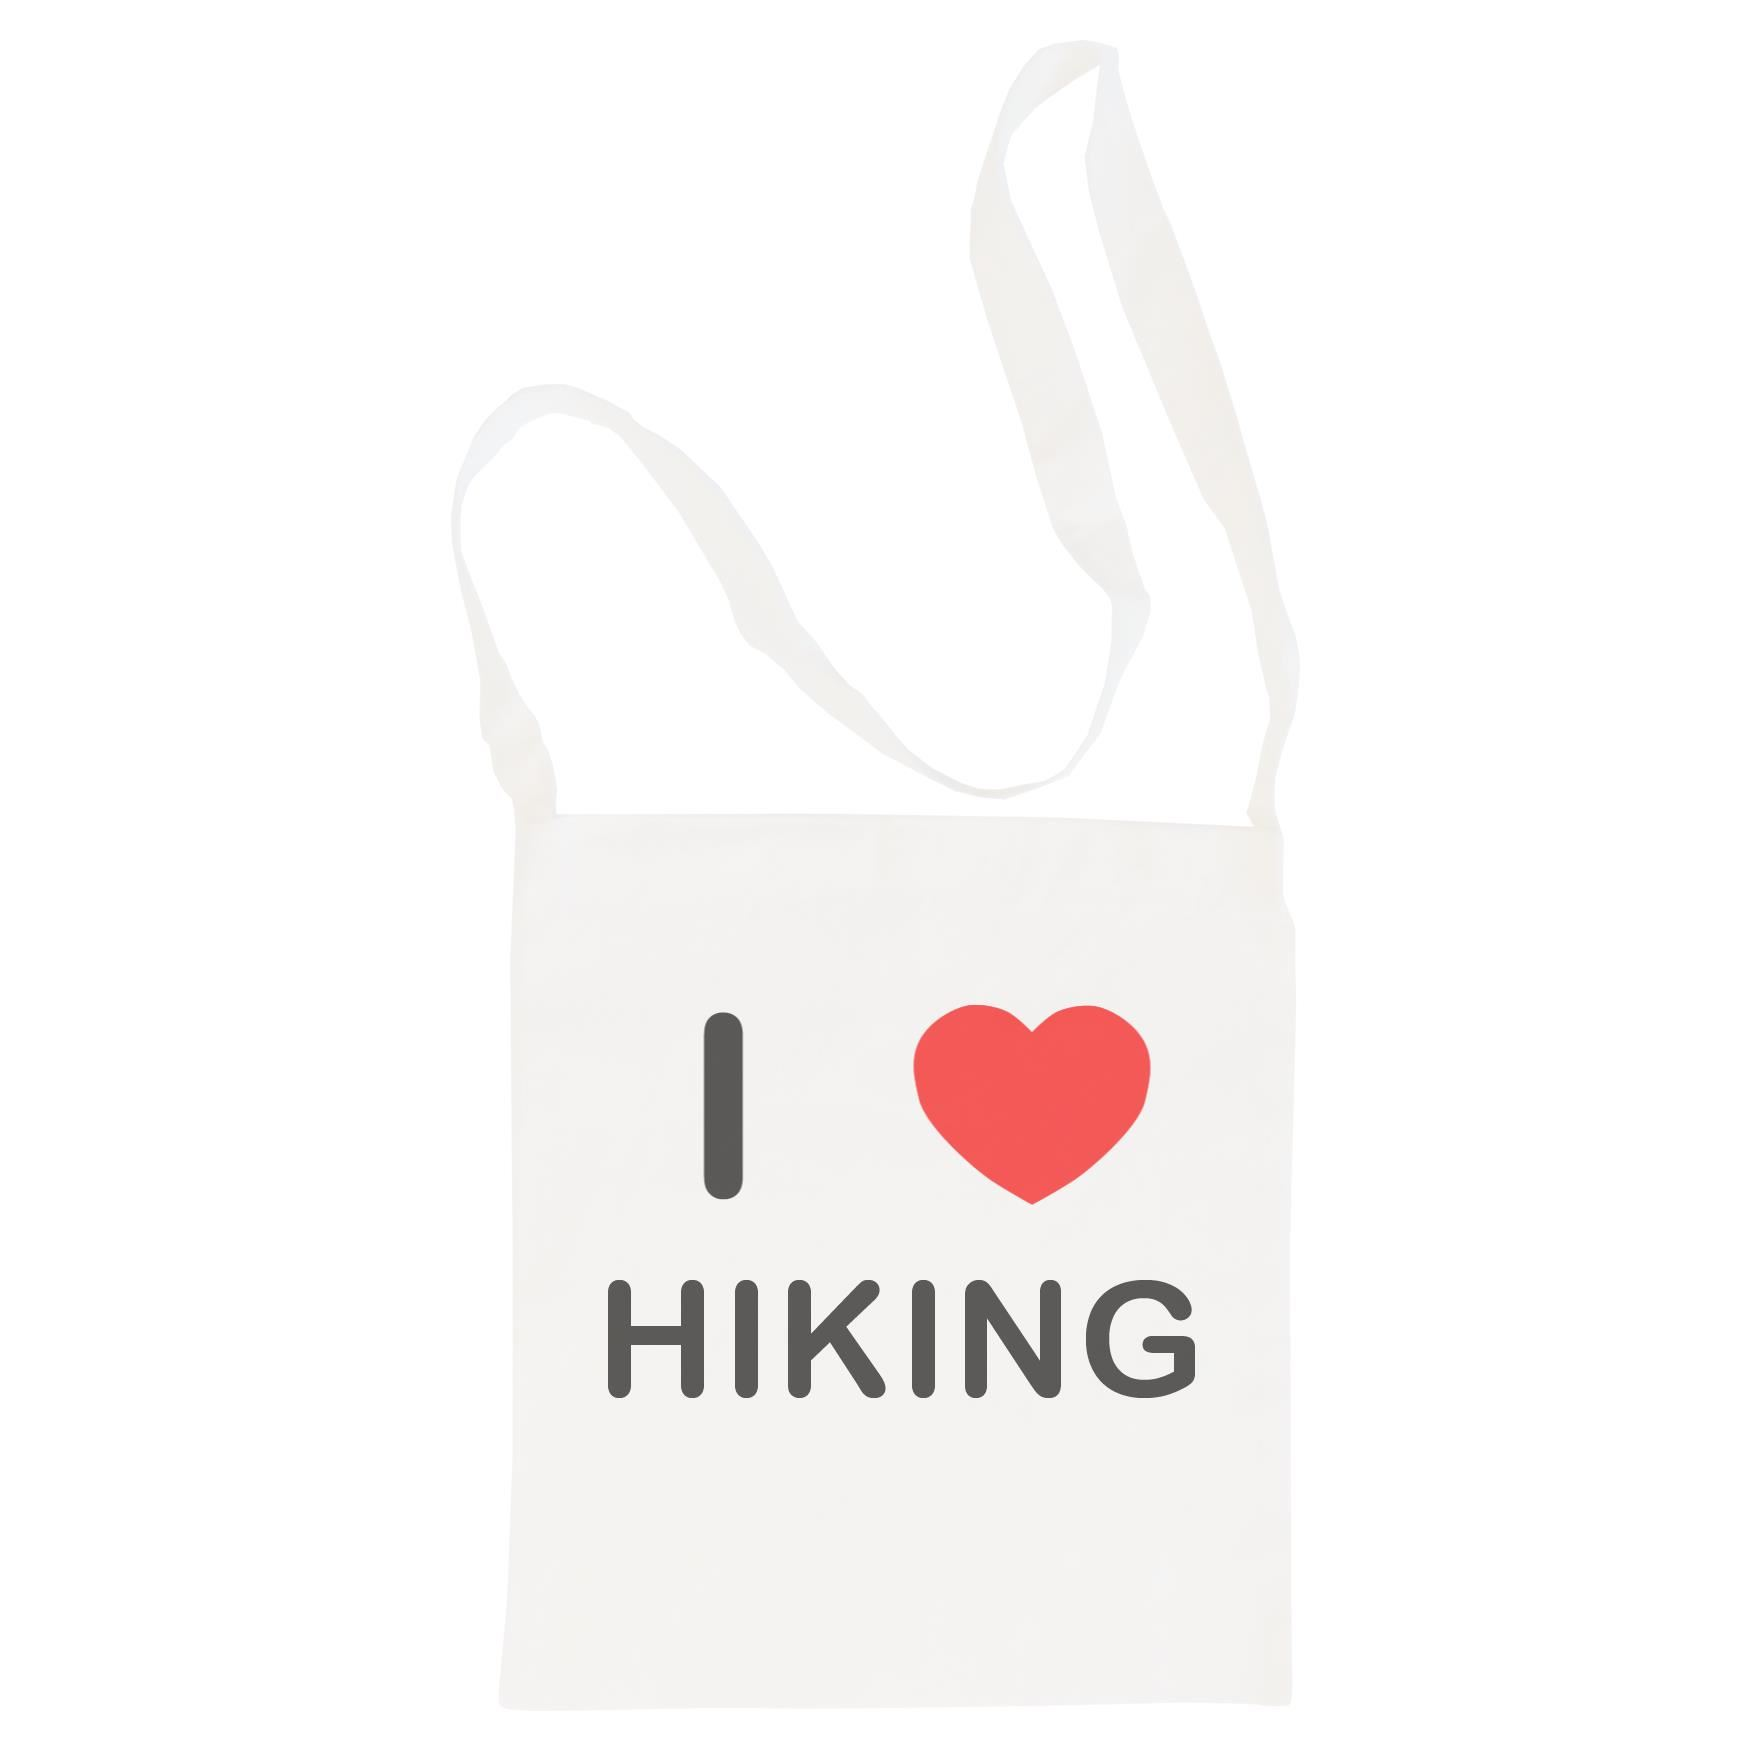 I Love Hiking - Cotton Bag | Size choice Tote, Shopper or Sling